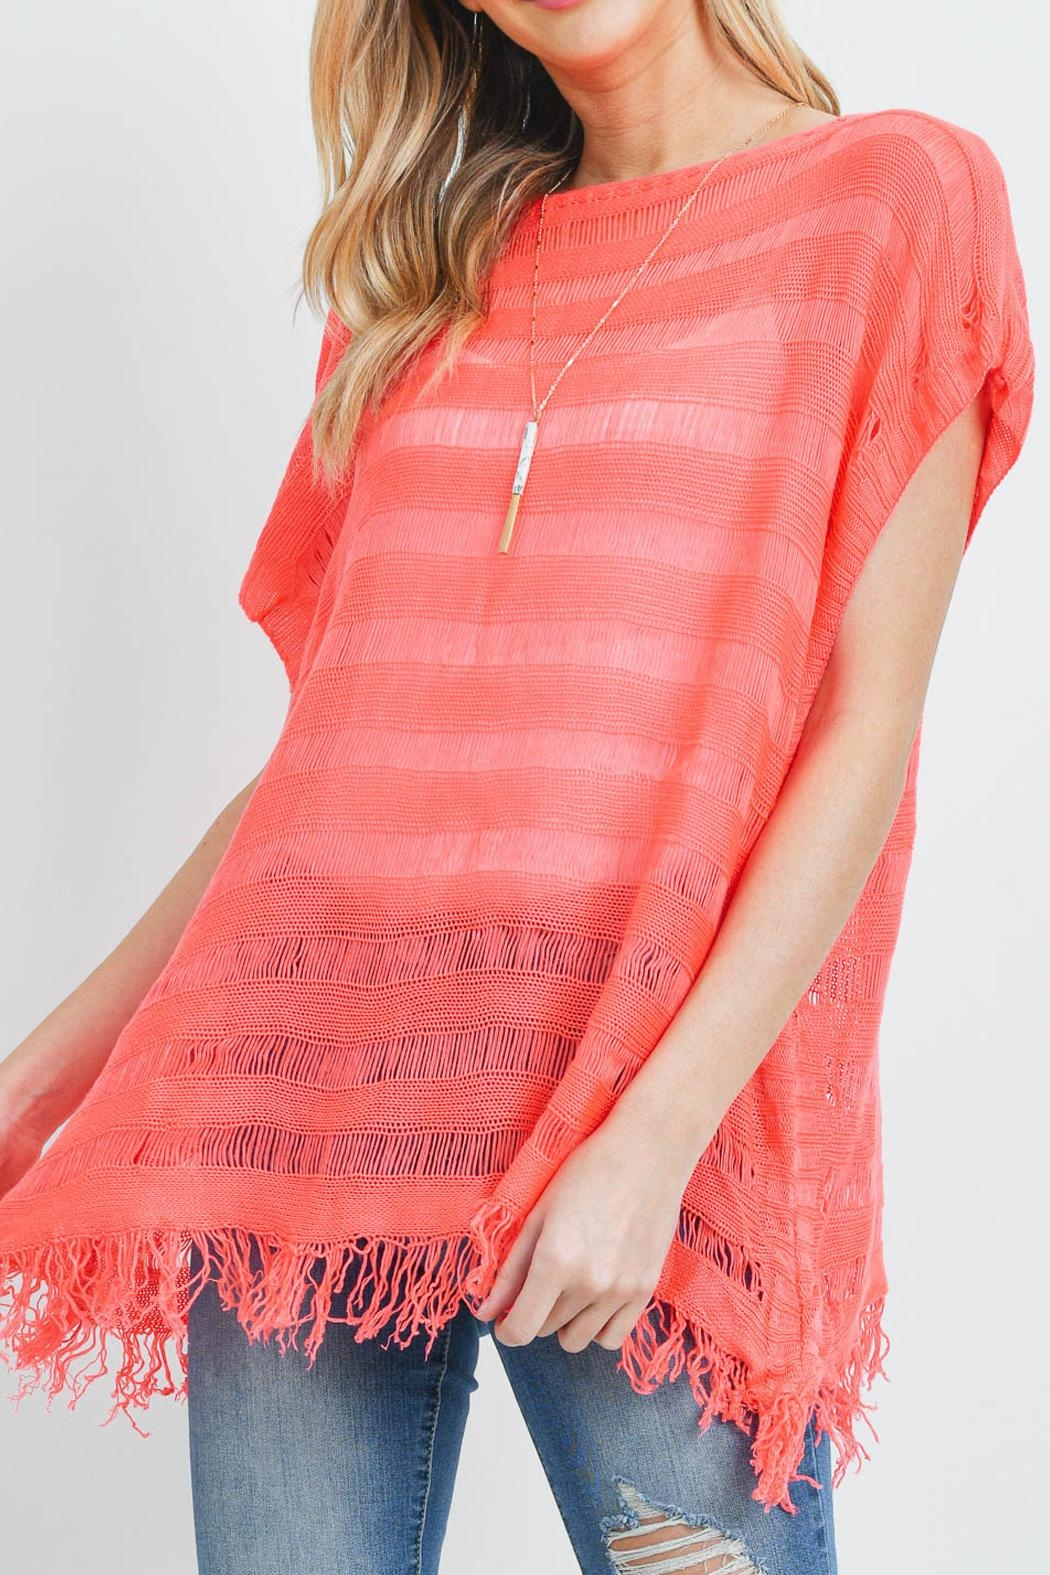 Riah Fashion Short-Sleeves-See-Through-Knitted Tassel Top - Back Cropped Image